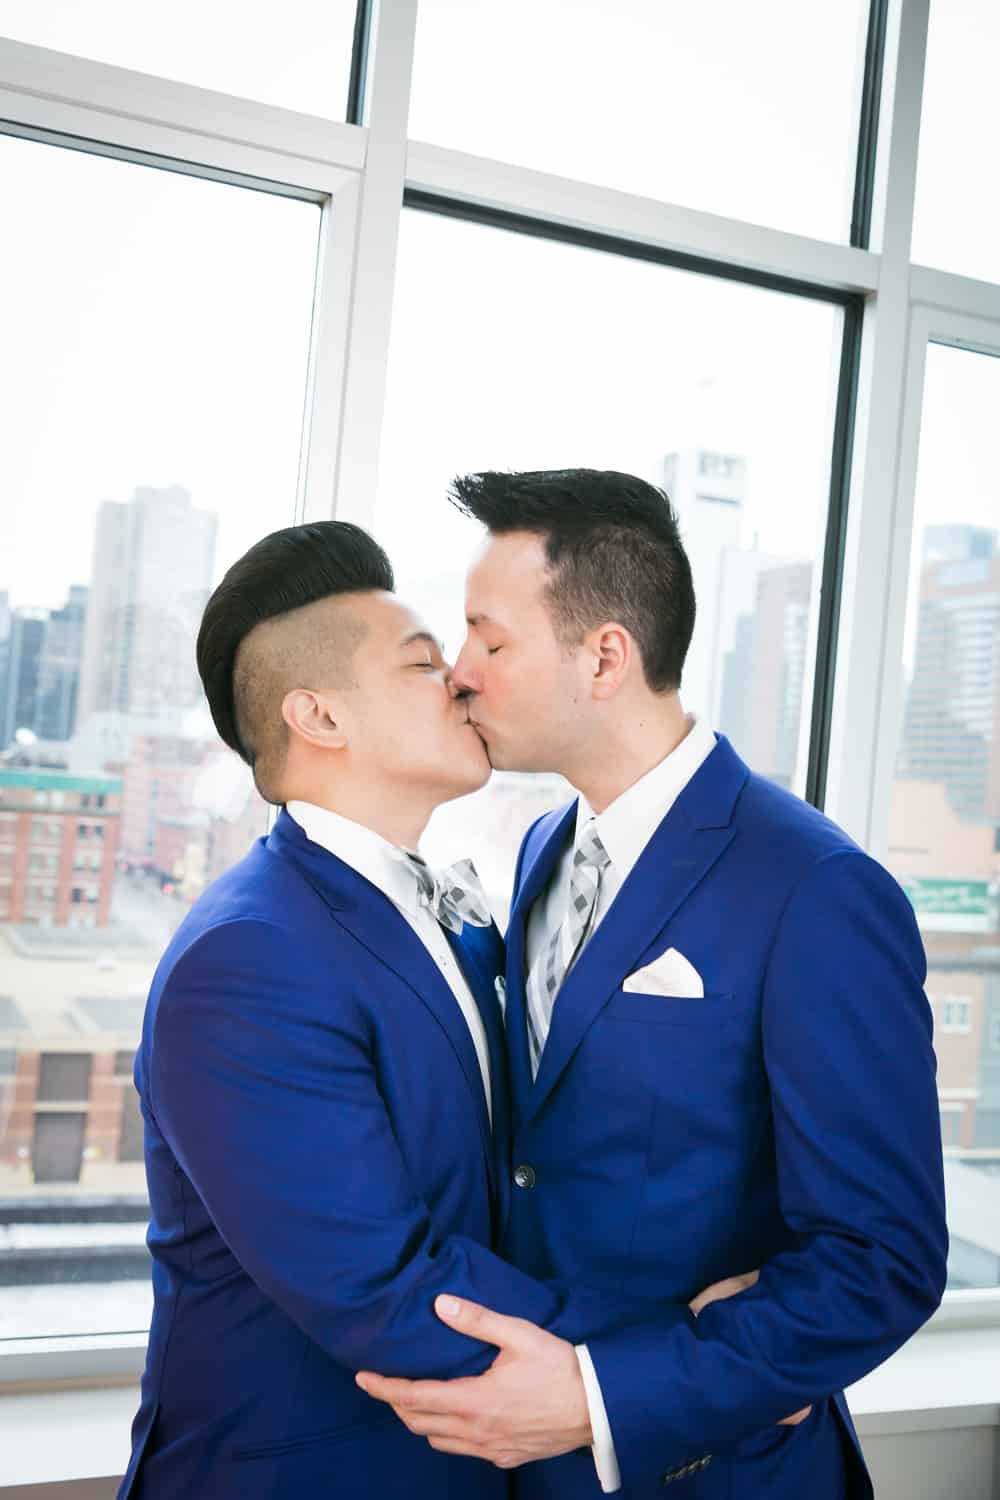 Two grooms kissing in front of window